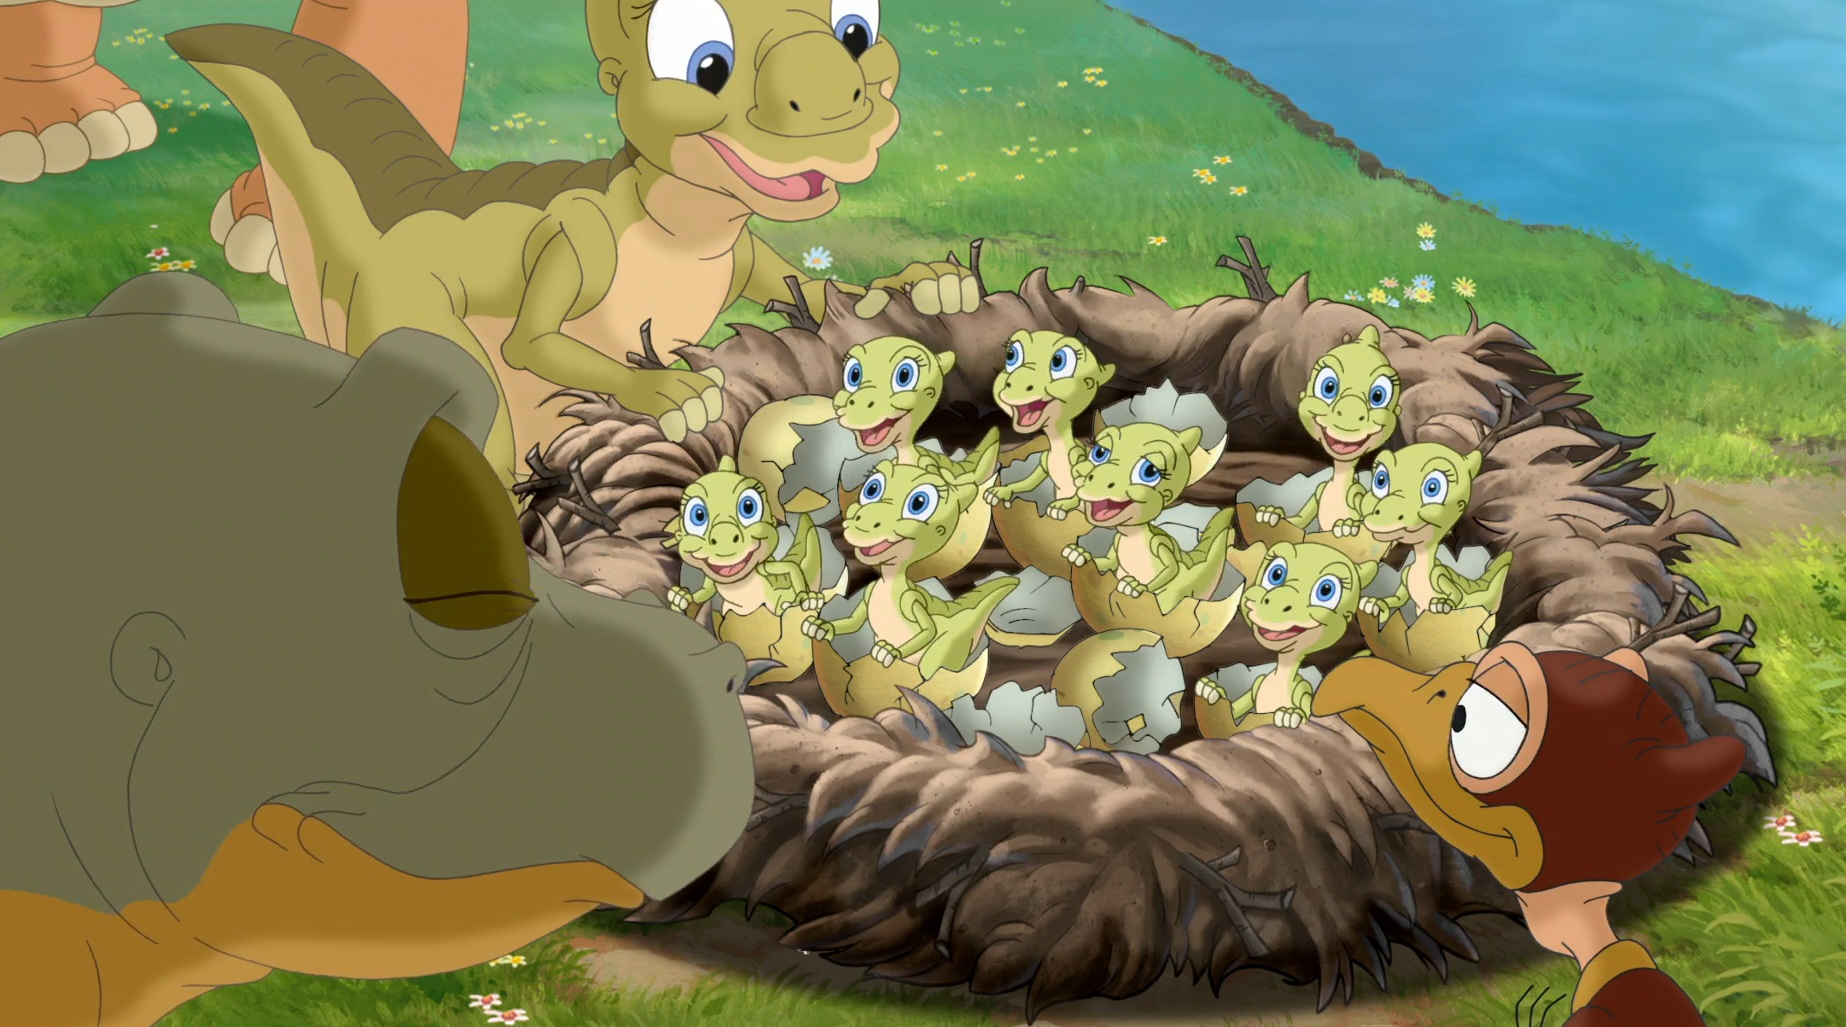 dtv wonders the land before time 14 jounrey of the brave